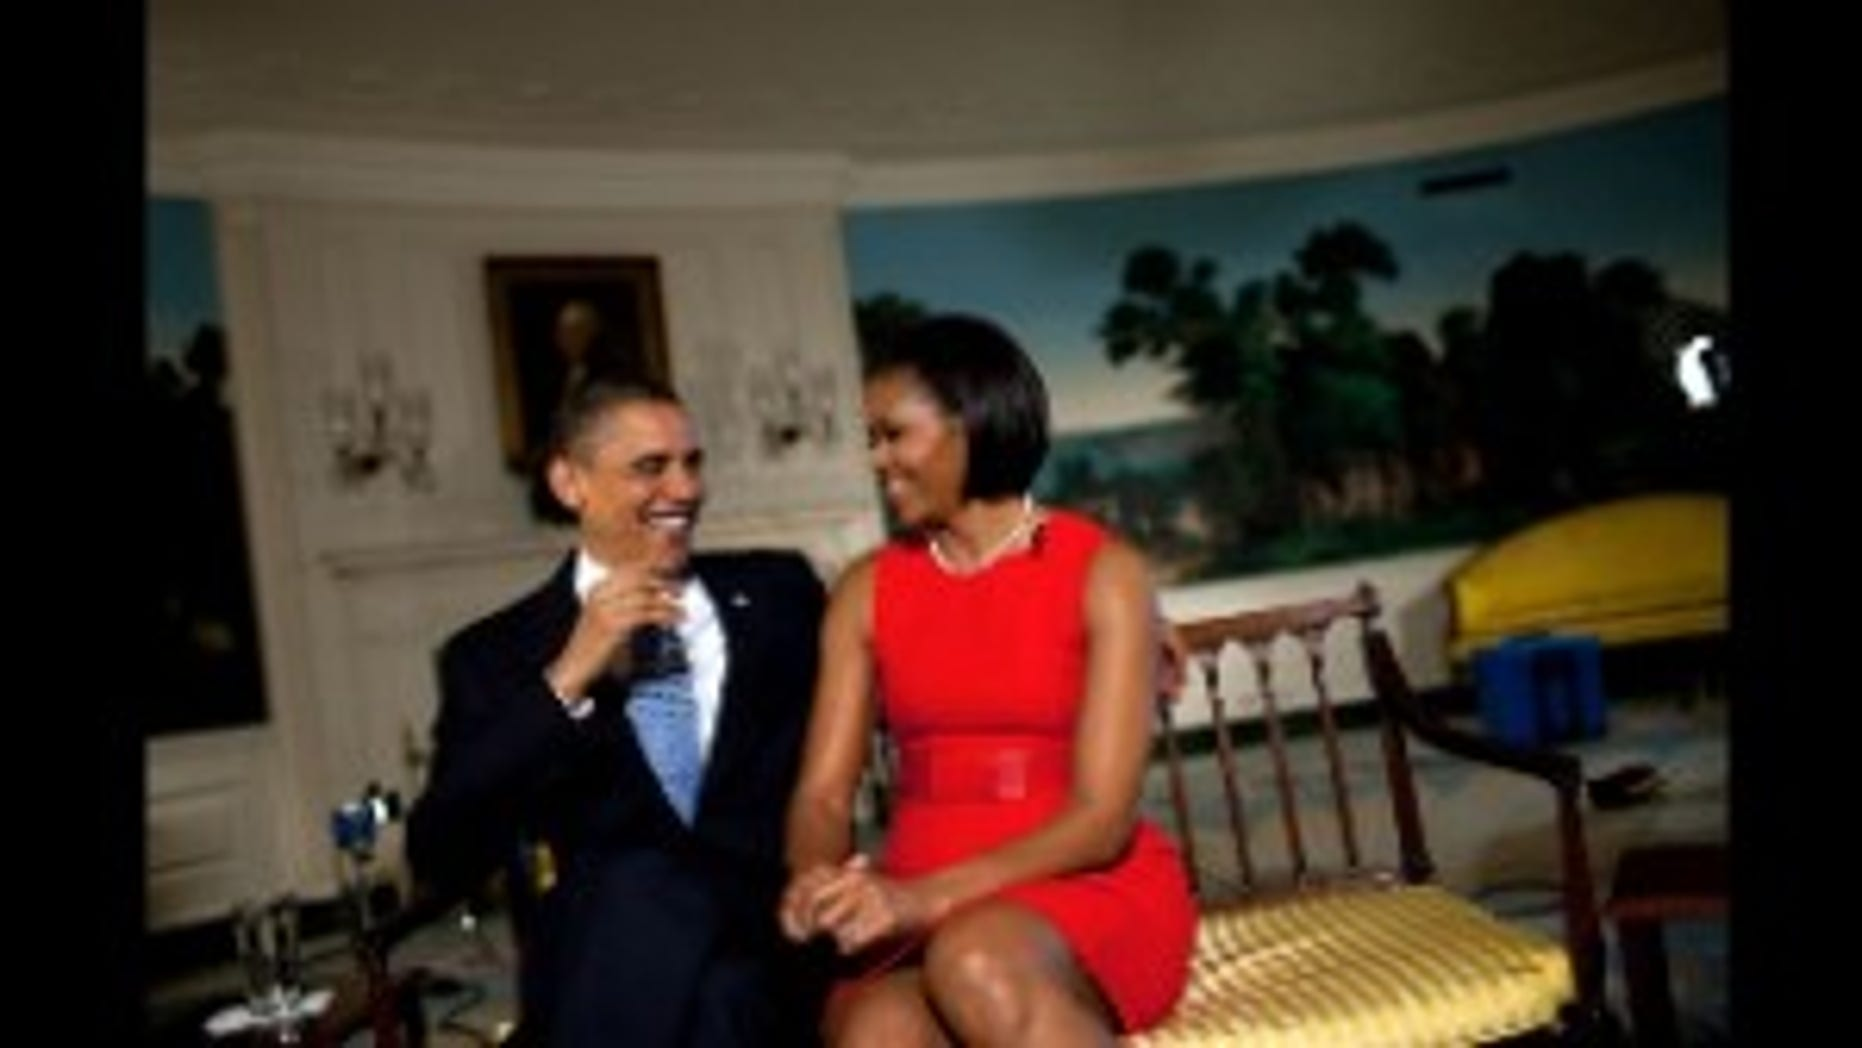 President Barack Obama and First Lady Michelle Obama laugh during a taping for the television show